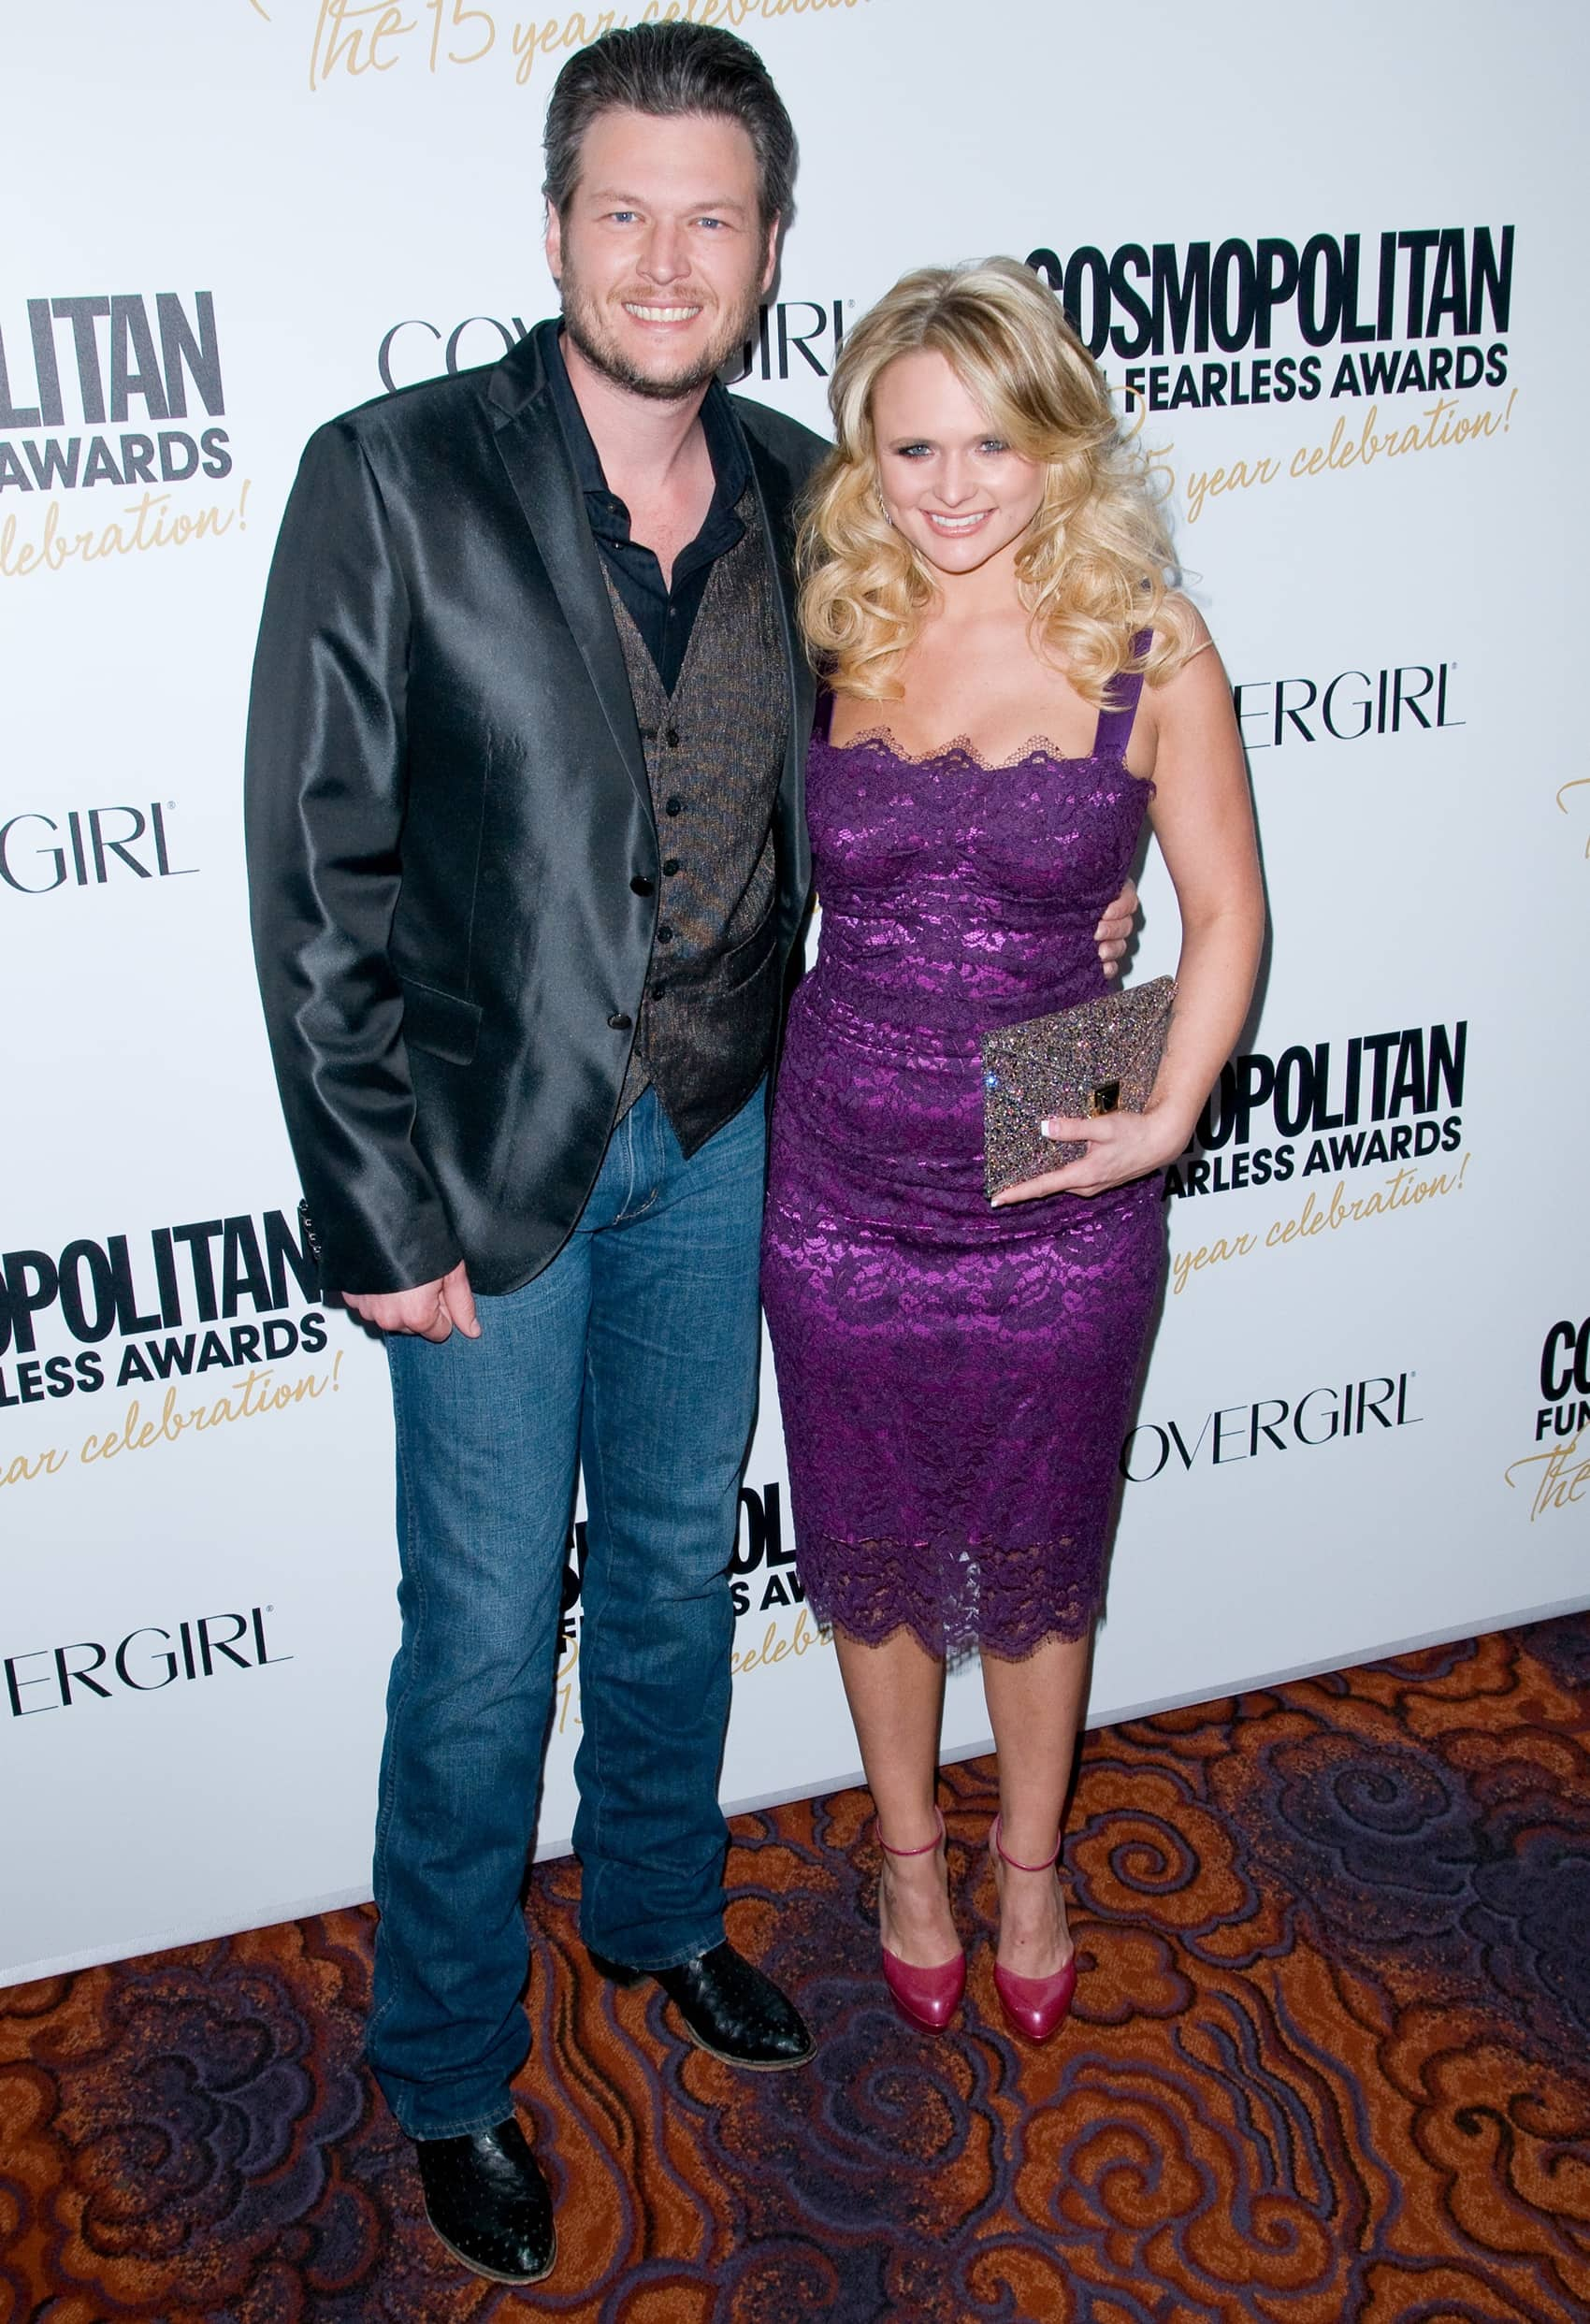 Blake Shelton and Miranda Lambert met during the CMT 100 Greatest Duets special in September 2005